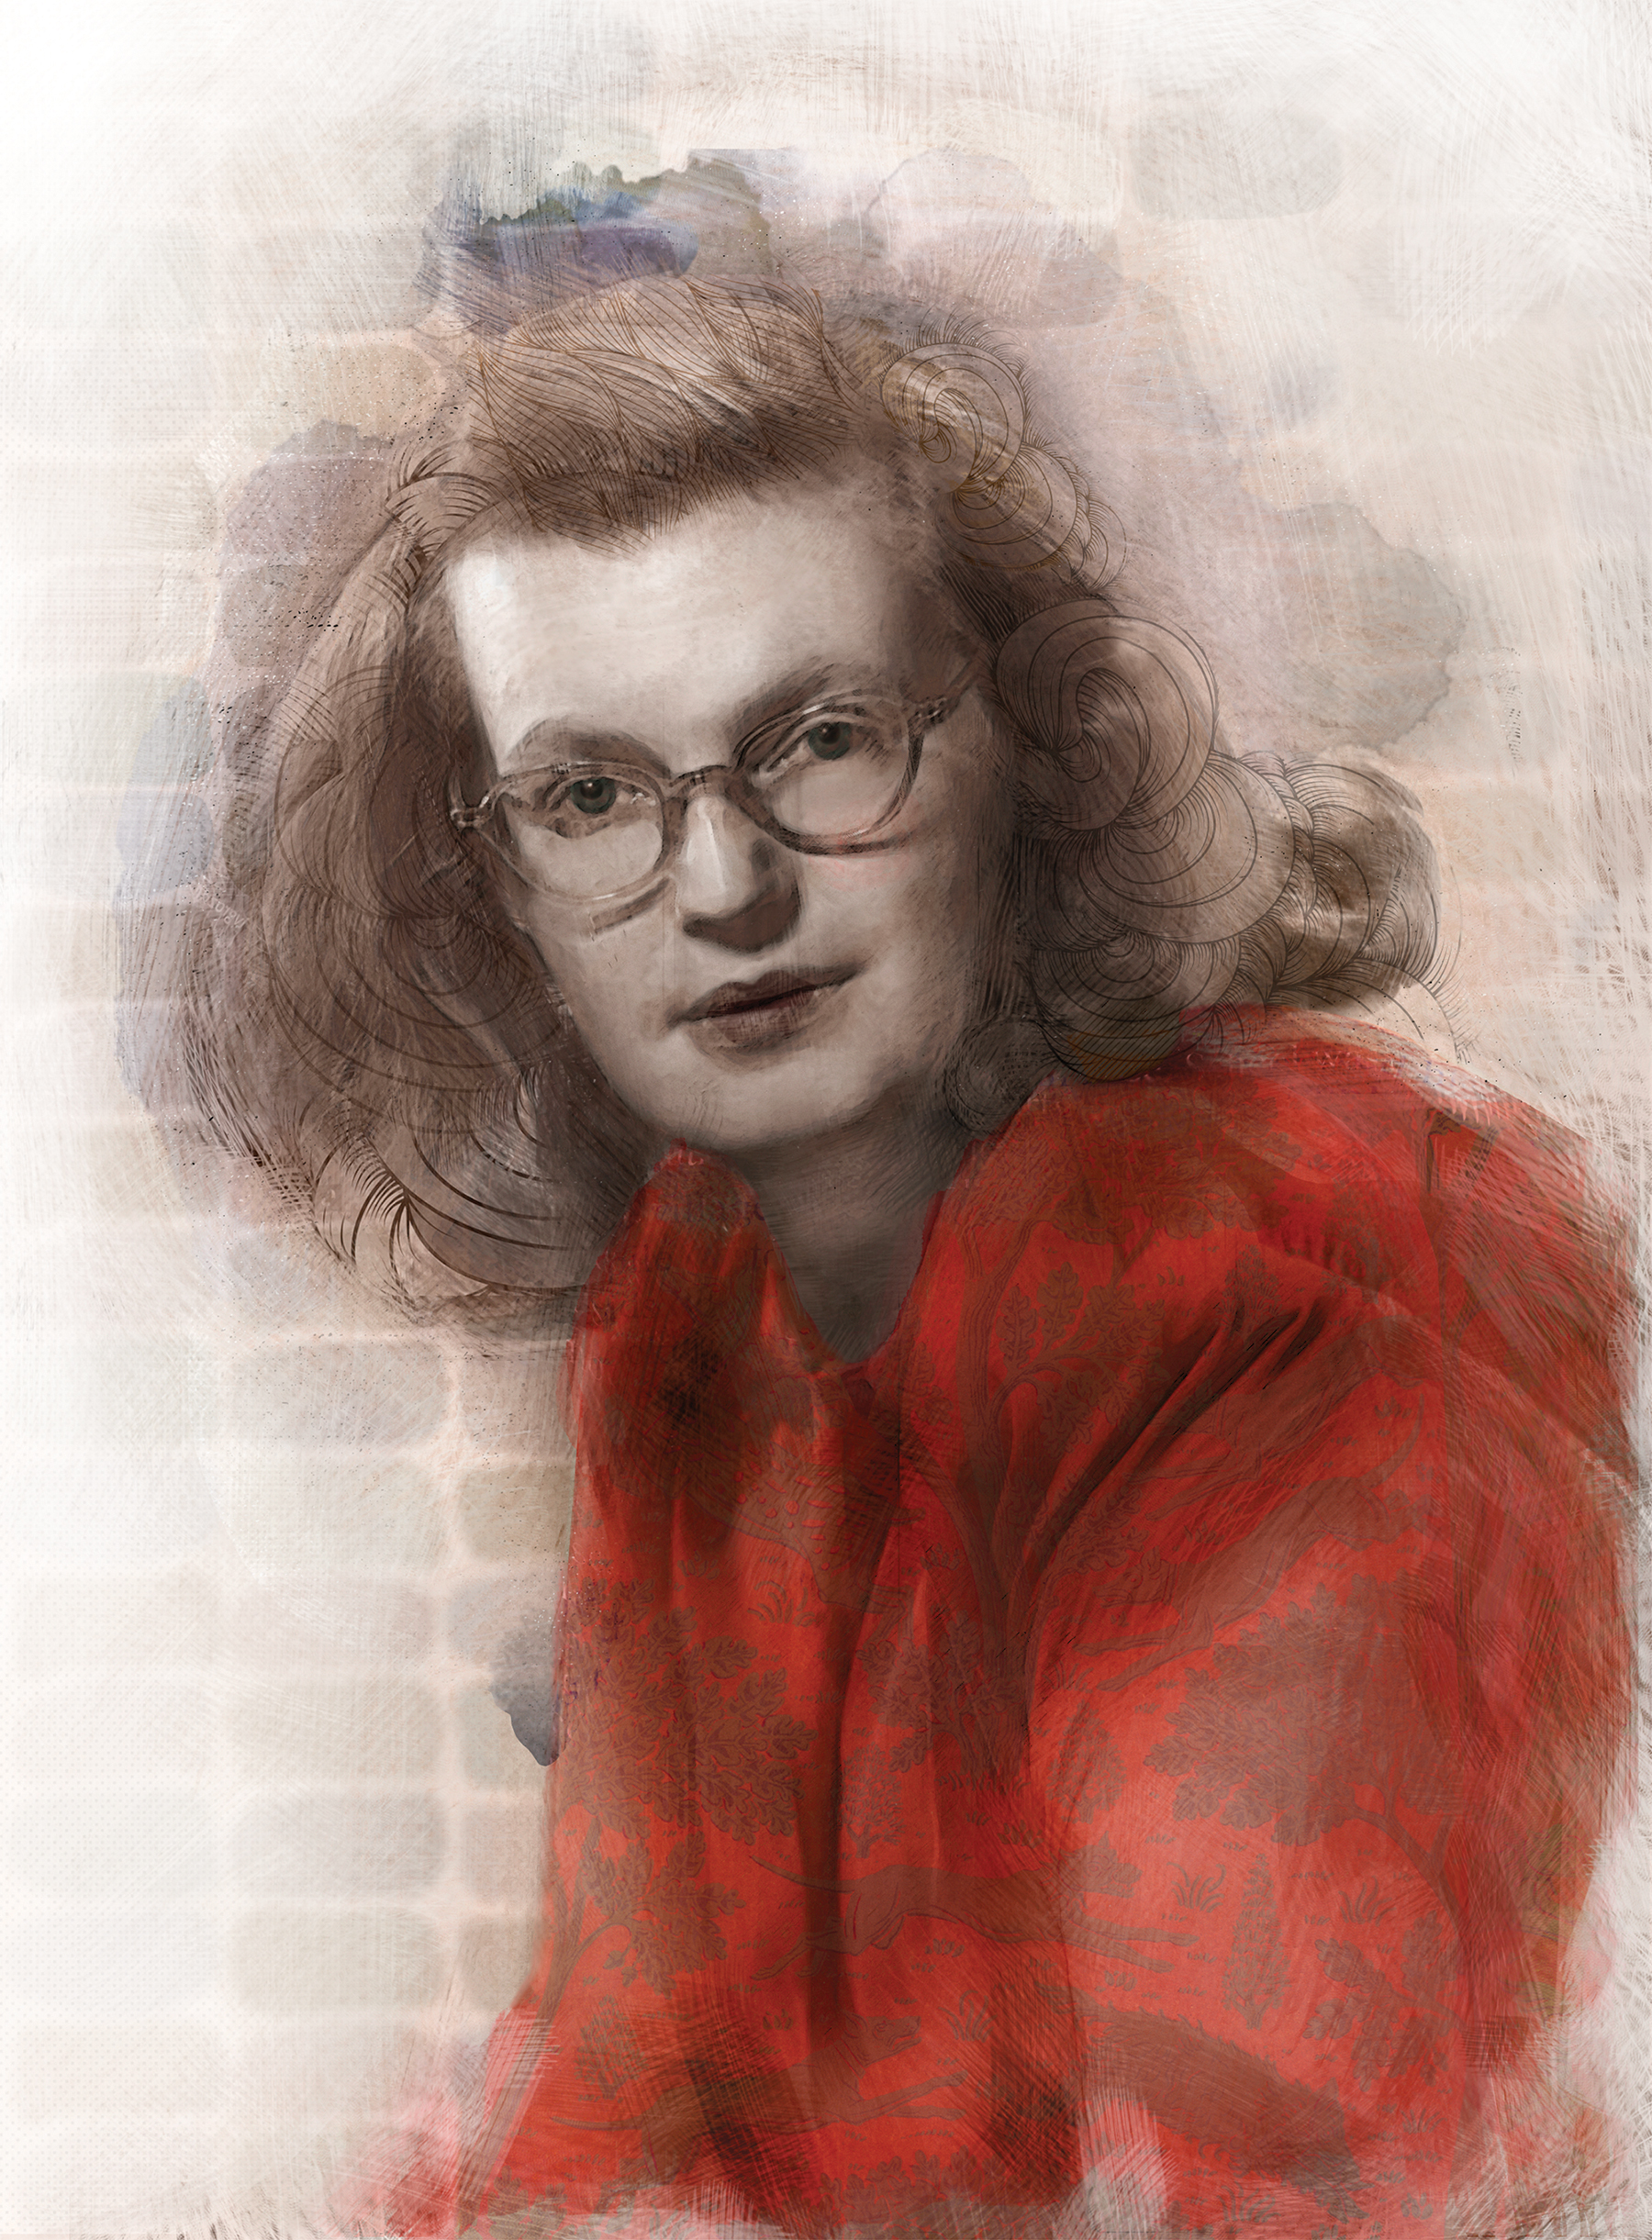 The Voice of Shirley Jackson Was Unnerving and Full of Foreboding     The Voice of Shirley Jackson Was Unnerving and Full of Foreboding    National Endowment for the Humanities  NEH